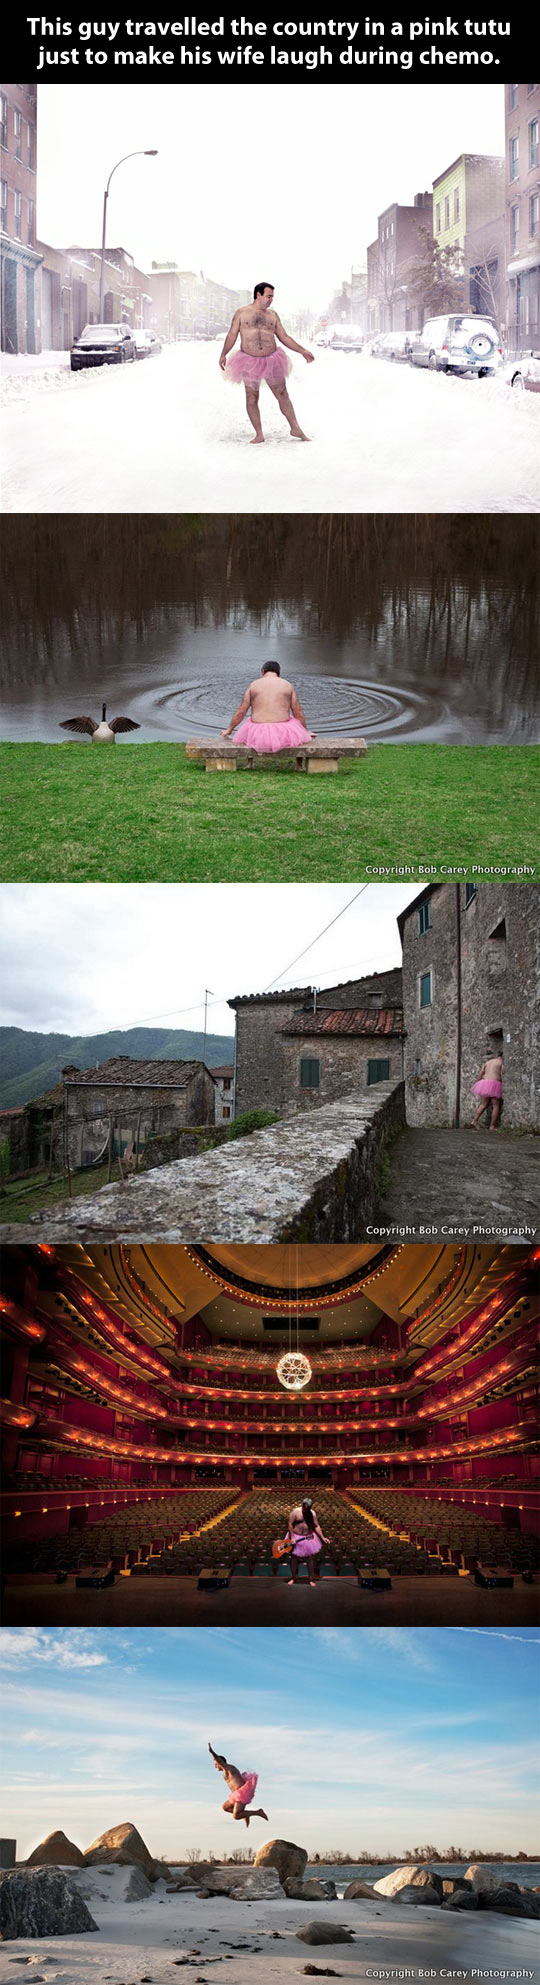 funny-pink-tutu-guy-world-countries